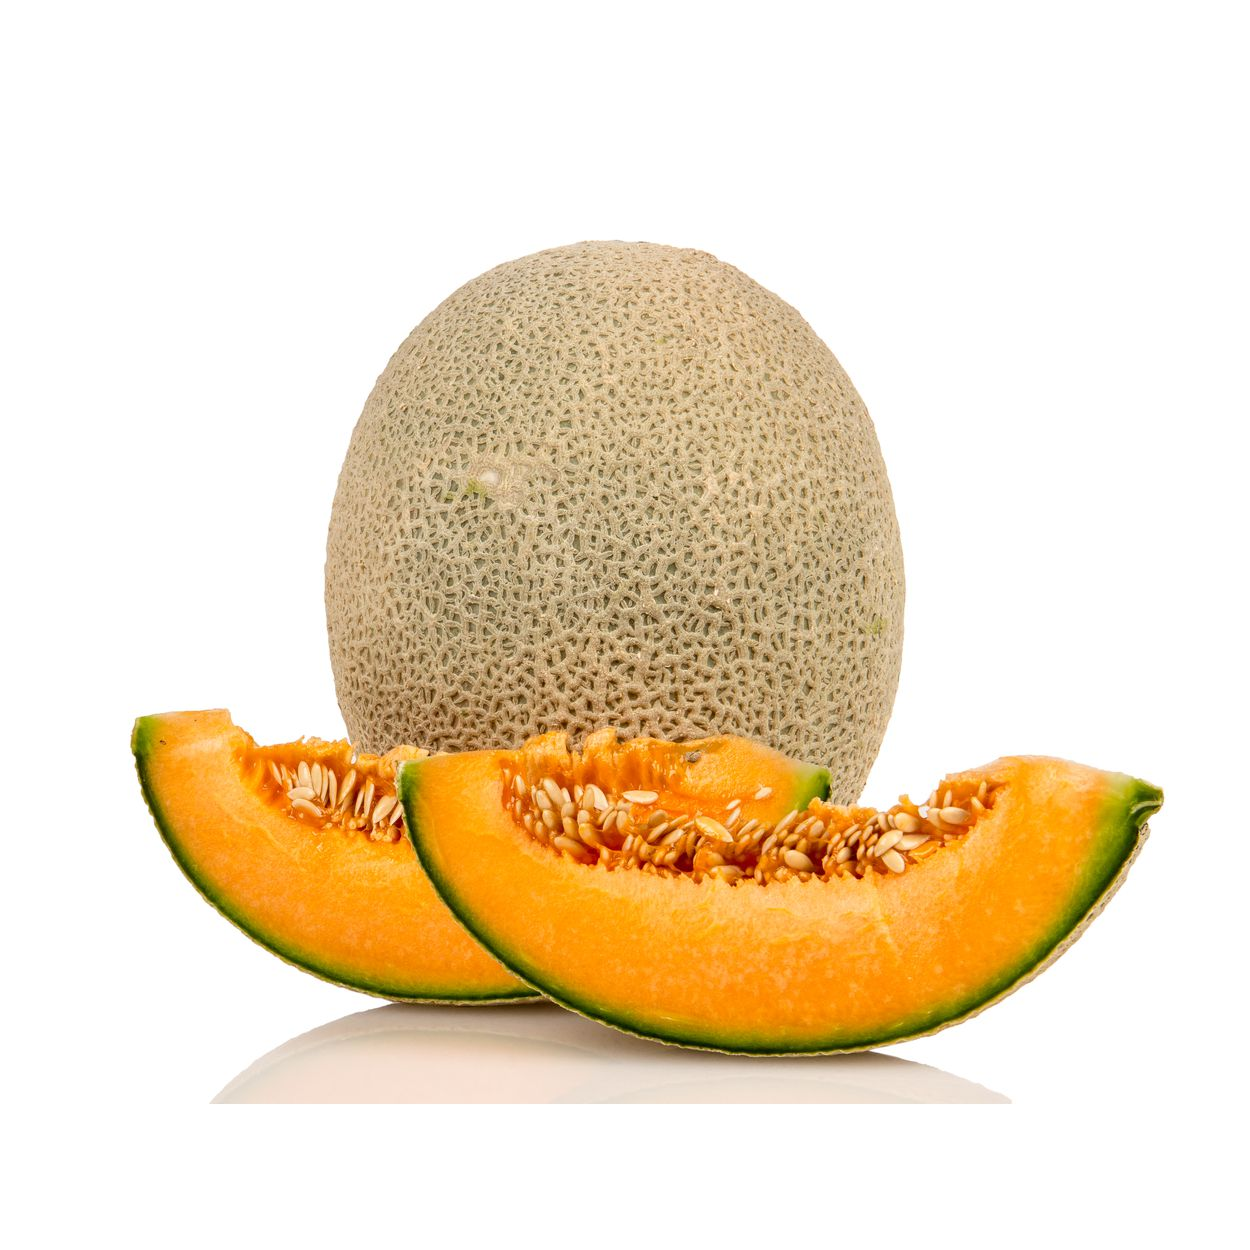 Azure Market Produce Melon Cantaloupe Organic Azure Standard Inside, they are juicy, sweet and yellow, becoming more yellow as they ripen. usd